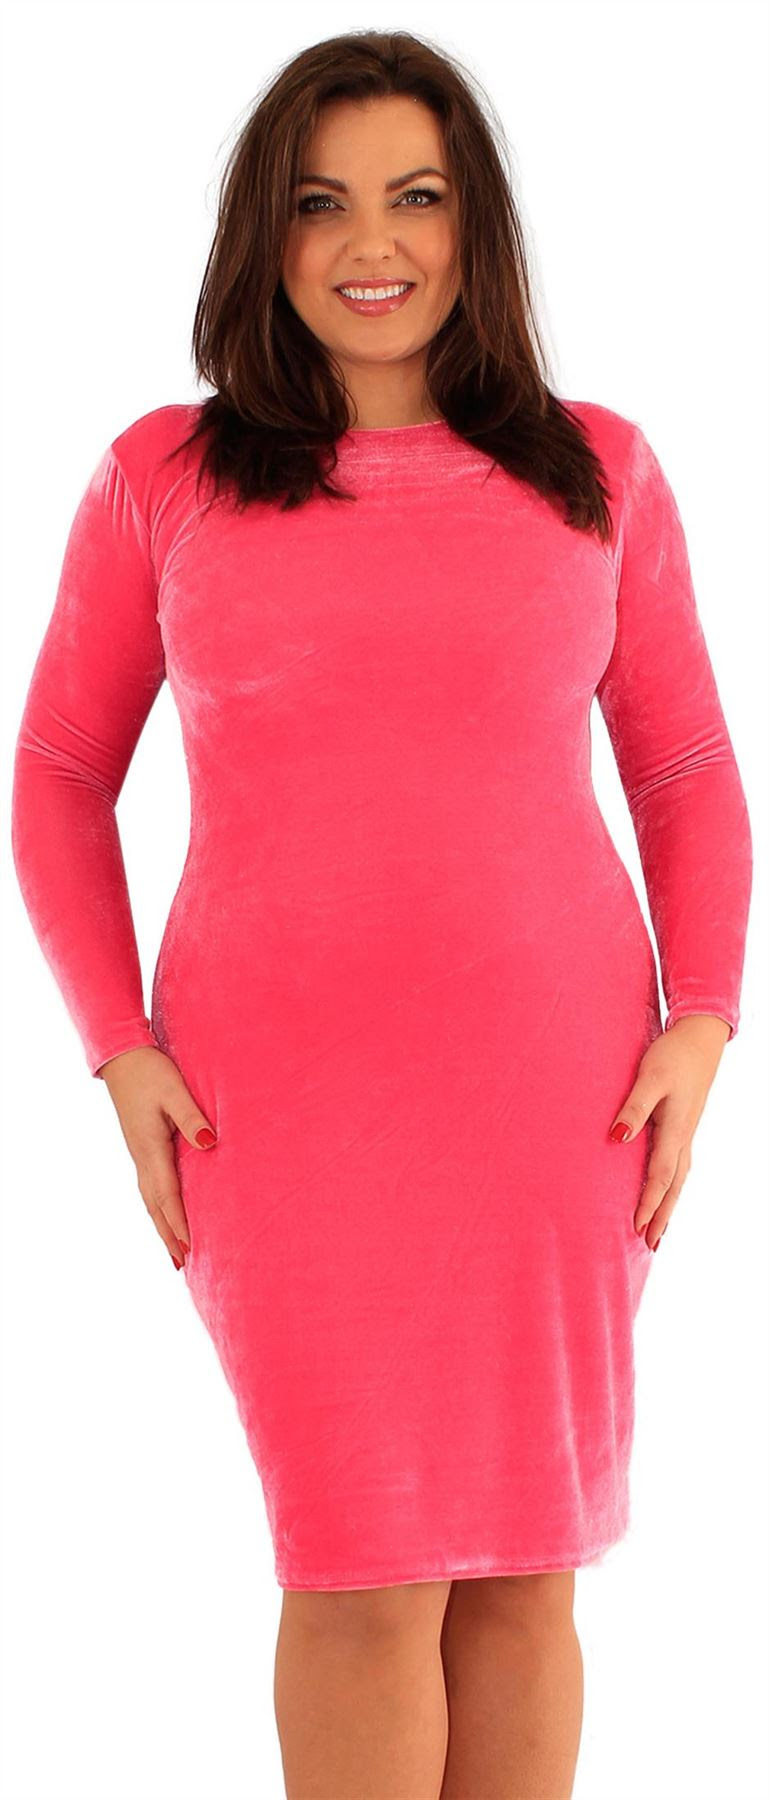 Blue long bodycon dresses plus size 28 30 concealed carry queenstown